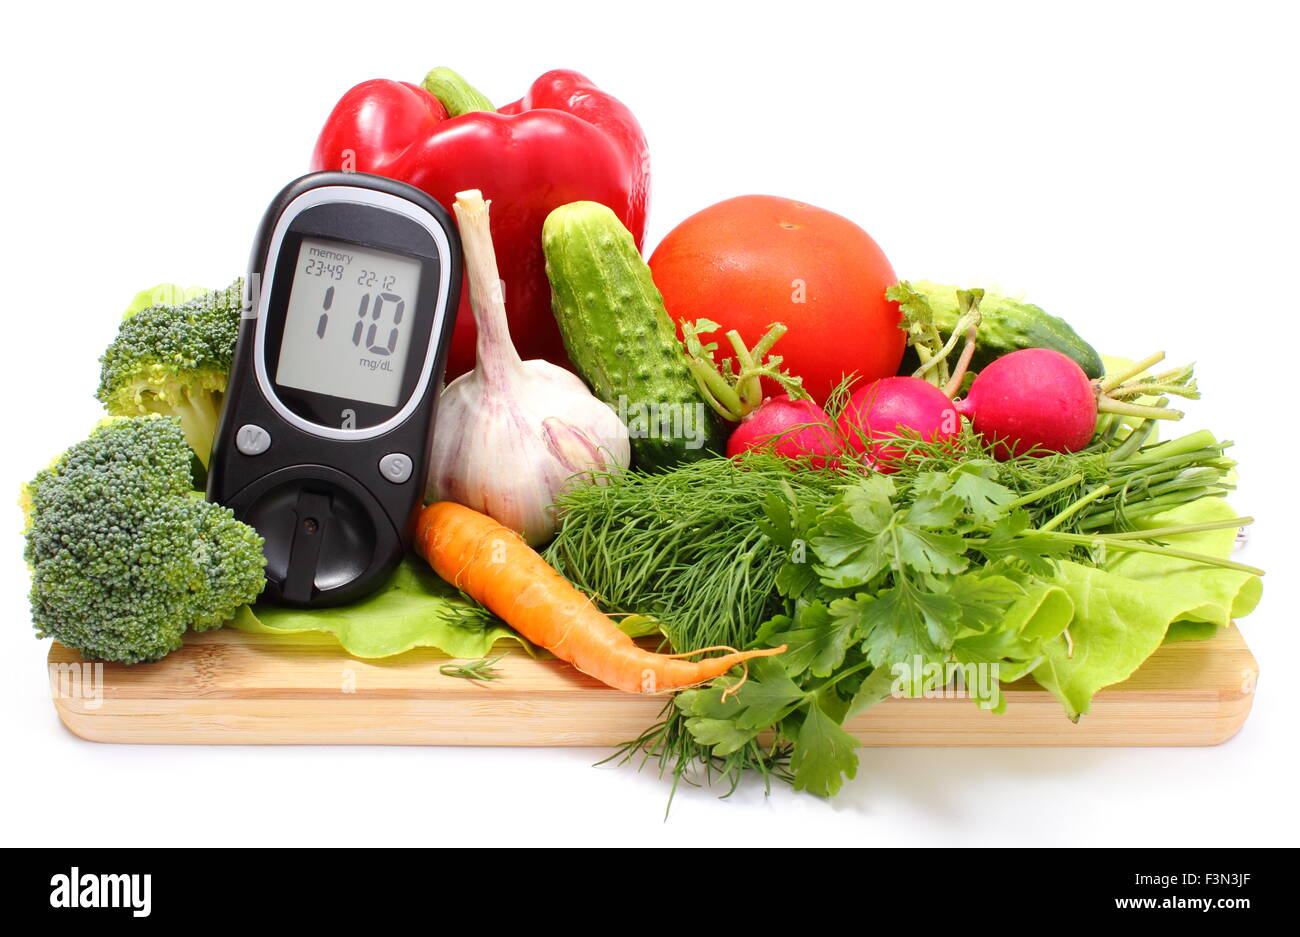 Glucometer and fresh ripe raw vegetables lying on wooden cutting board, desk of healthy organic vegetables, concept - Stock Image